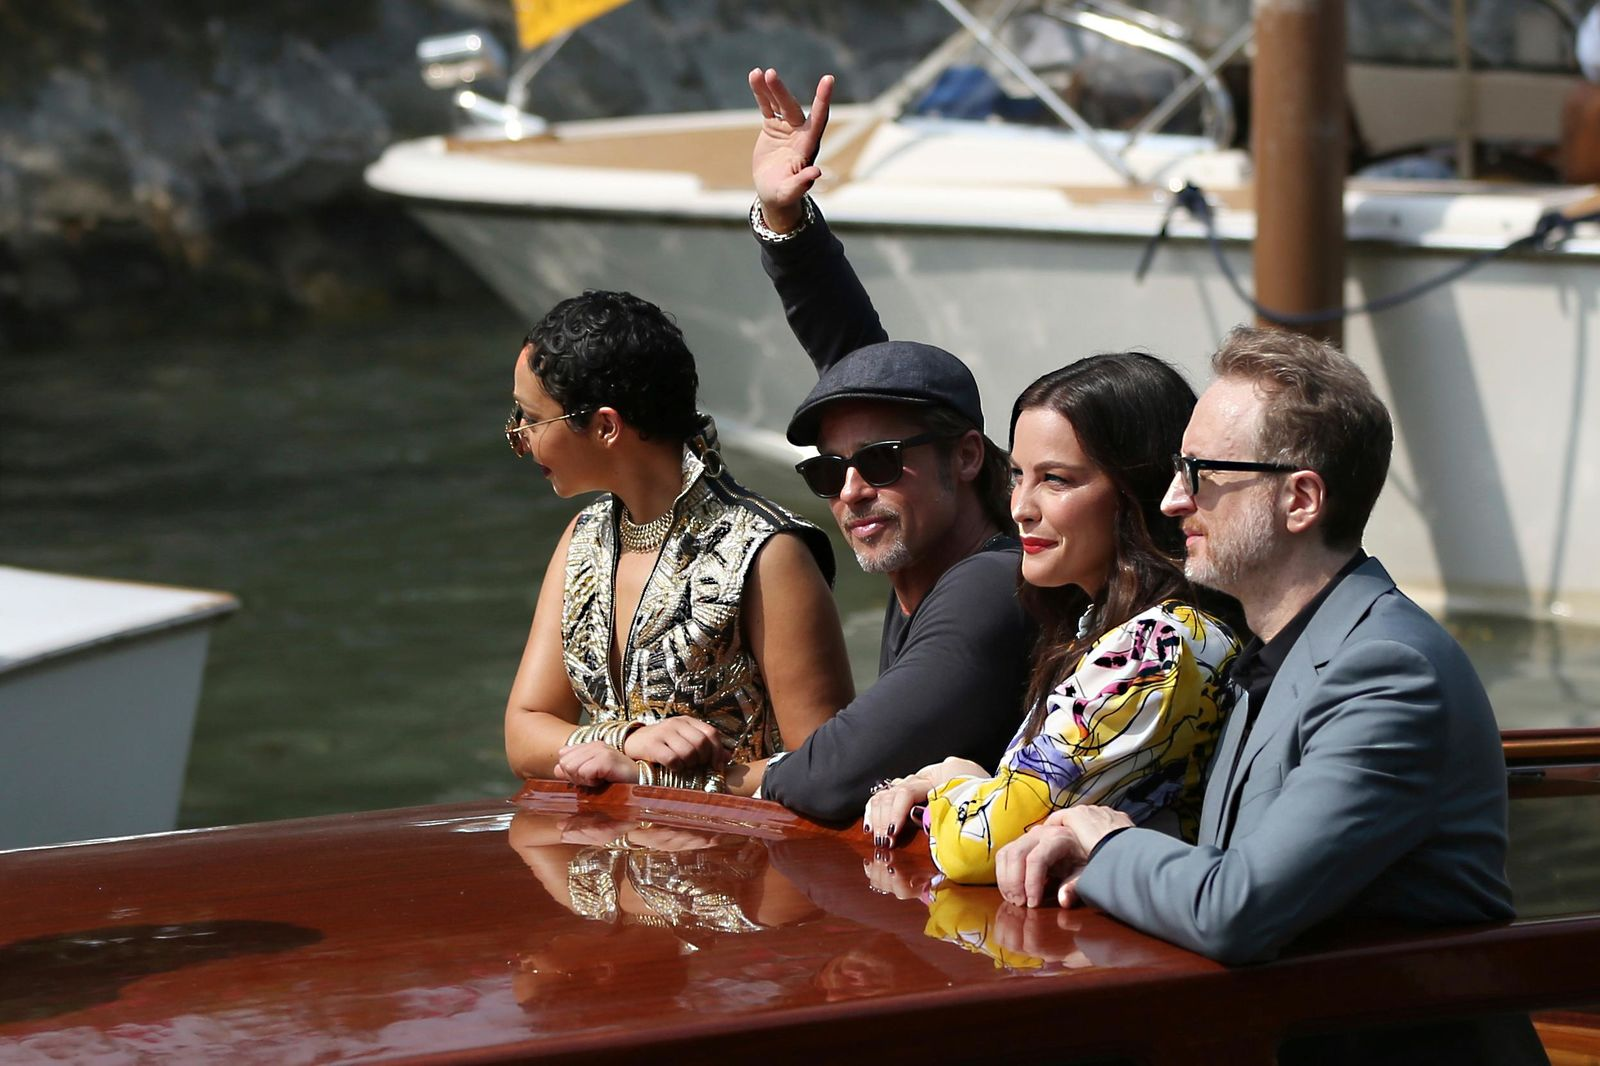 Actors Ruth Negga, from left, Brad Pitt, Liv Tyler and director James Gray pose for photographers upon arrival for the photo call of the film 'Ad Astra' at the 76th edition of the Venice Film Festival in Venice, Italy, Thursday, Aug. 29, 2019. (AP Photo/Dejan Jankovic/)